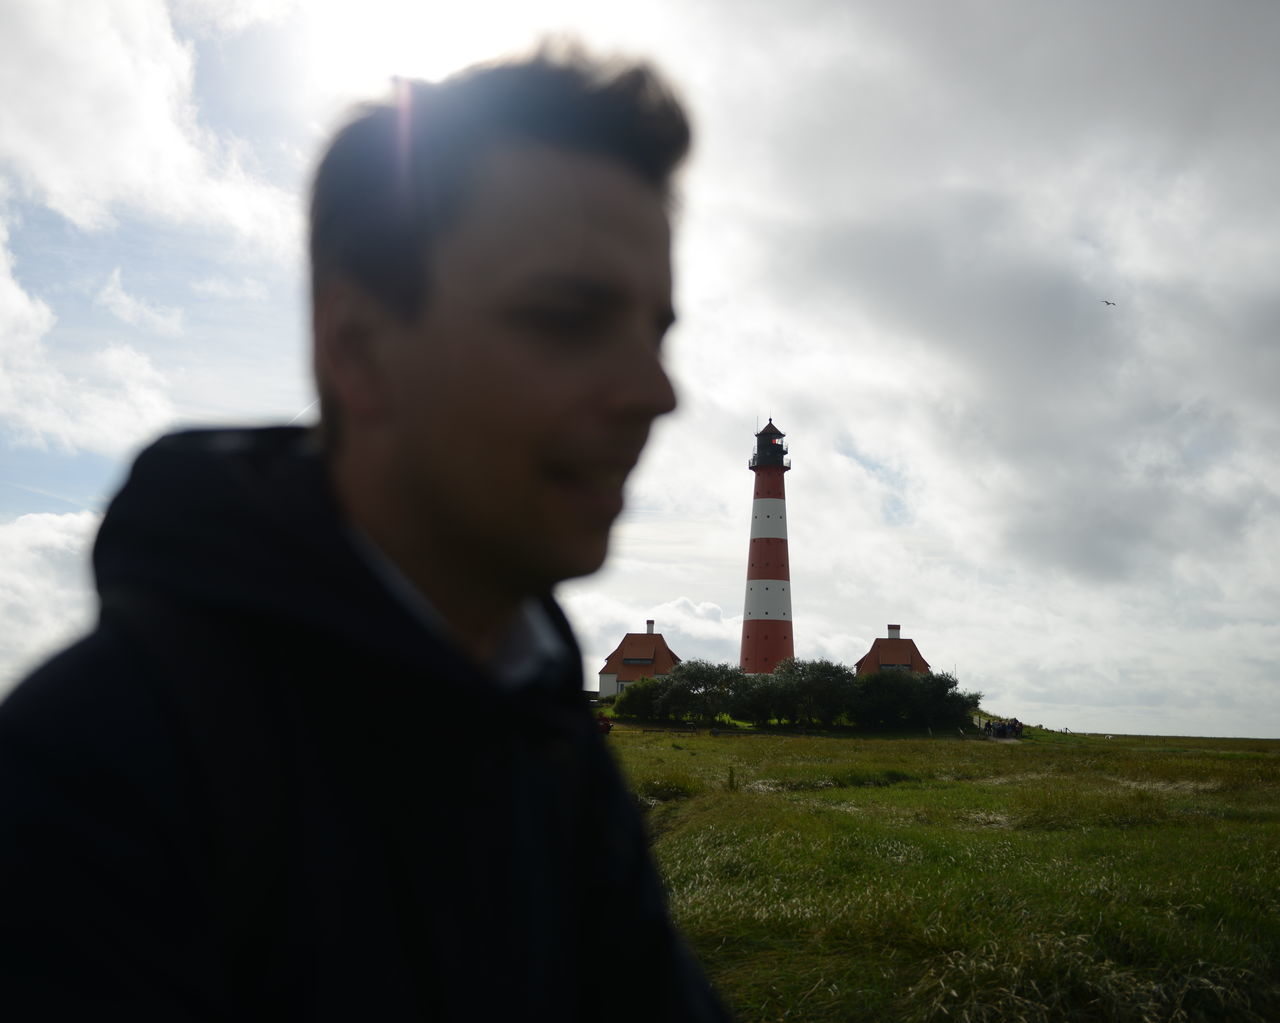 sky, architecture, cloud - sky, lighthouse, built structure, grass, outdoors, day, building exterior, one person, men, nature, people